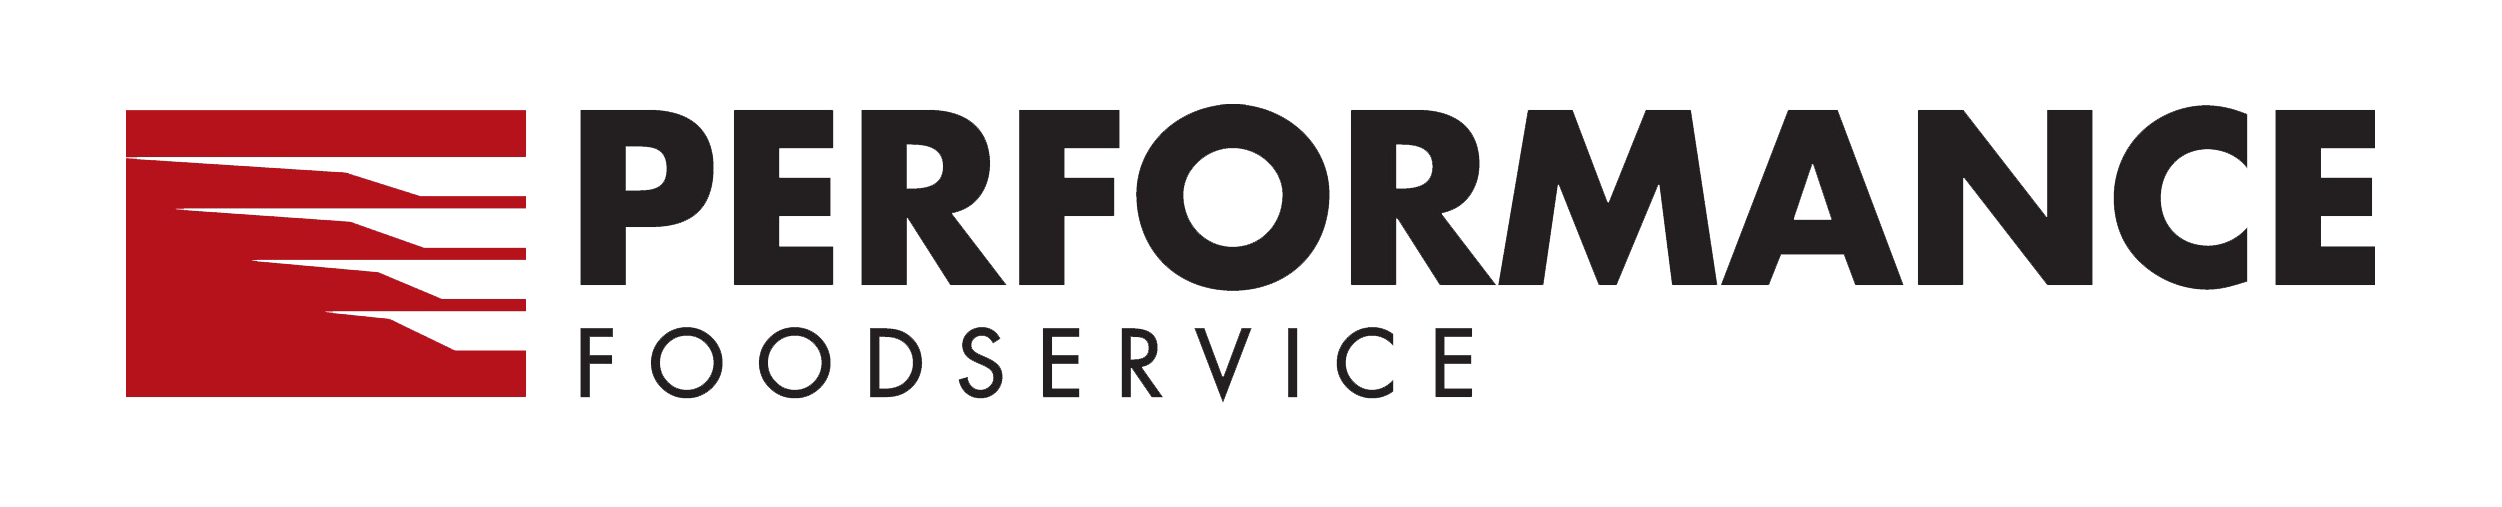 Performance food service Logo